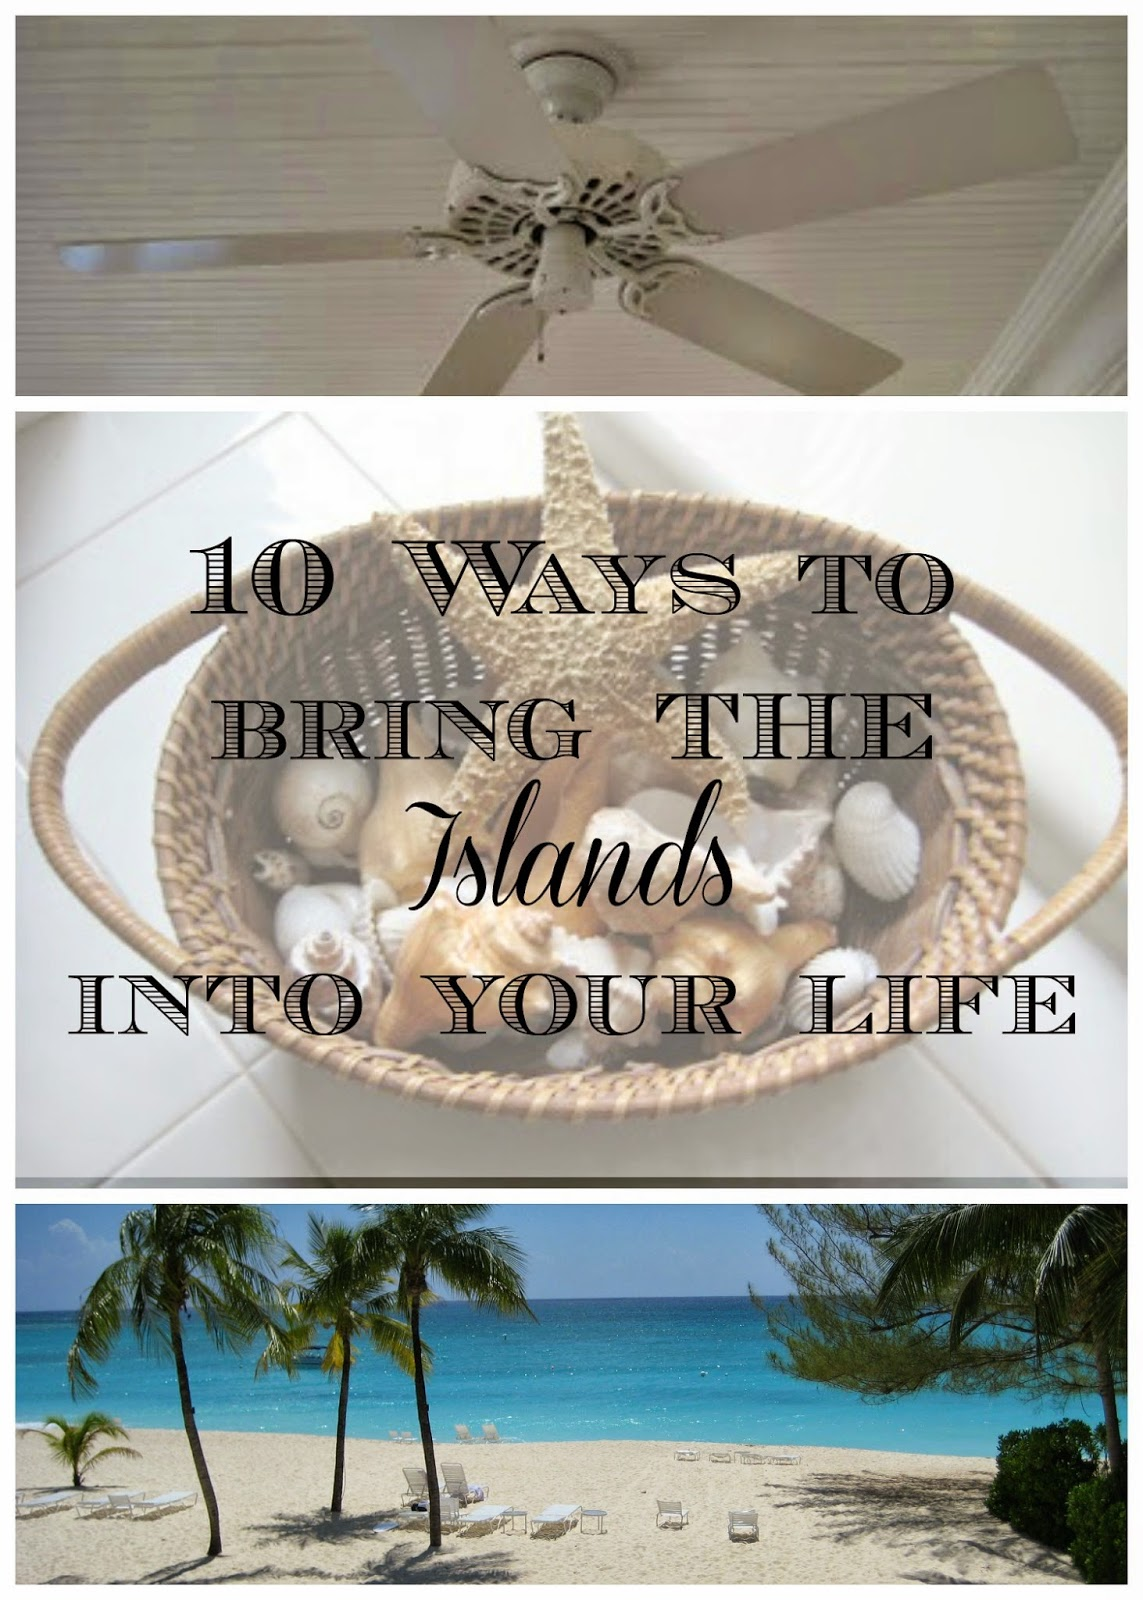 10 Ways to Bring the Islands into Your Life - Tips to make your home feel like a vacation!